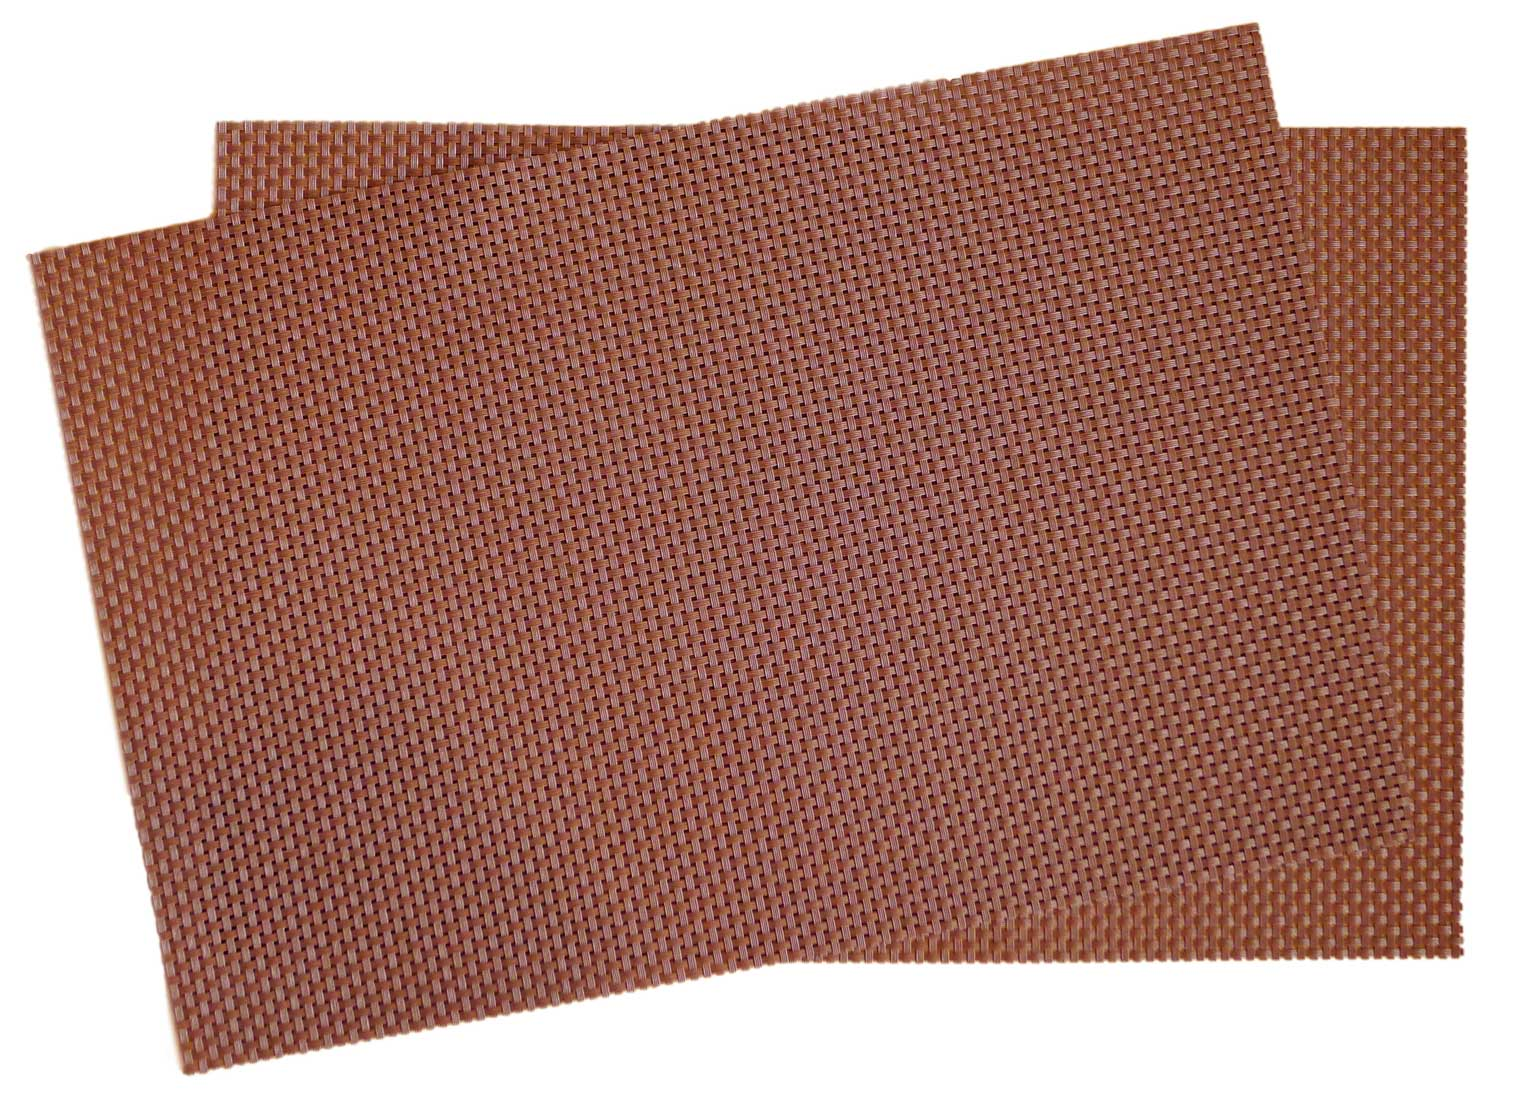 Image of Crossweave Woven Vinyl Placemat, Set of 4 - Chocolate Brown